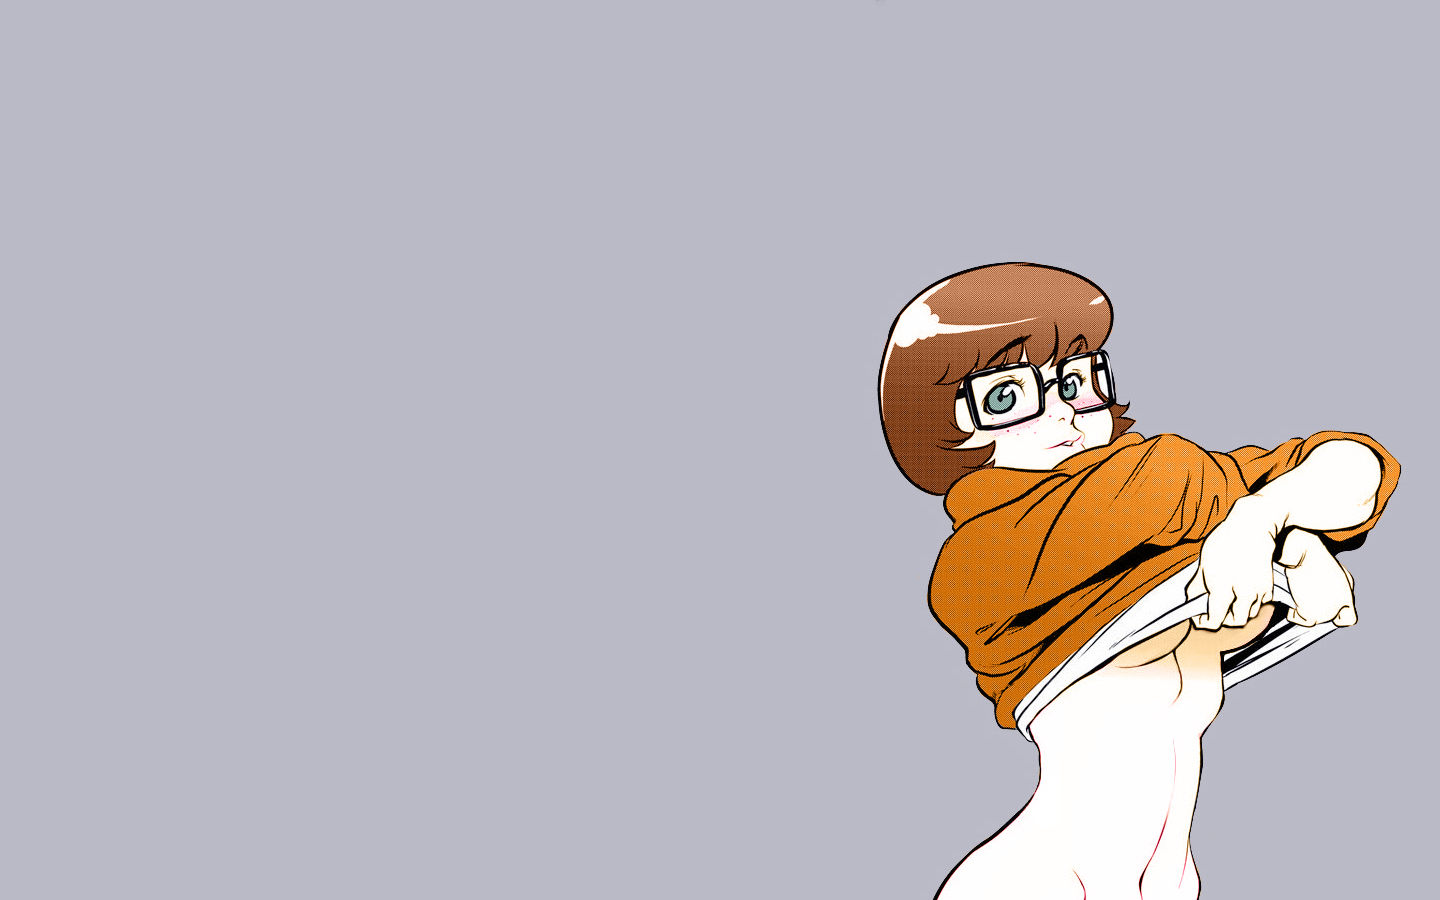 Velma shaggy erotic cartoon